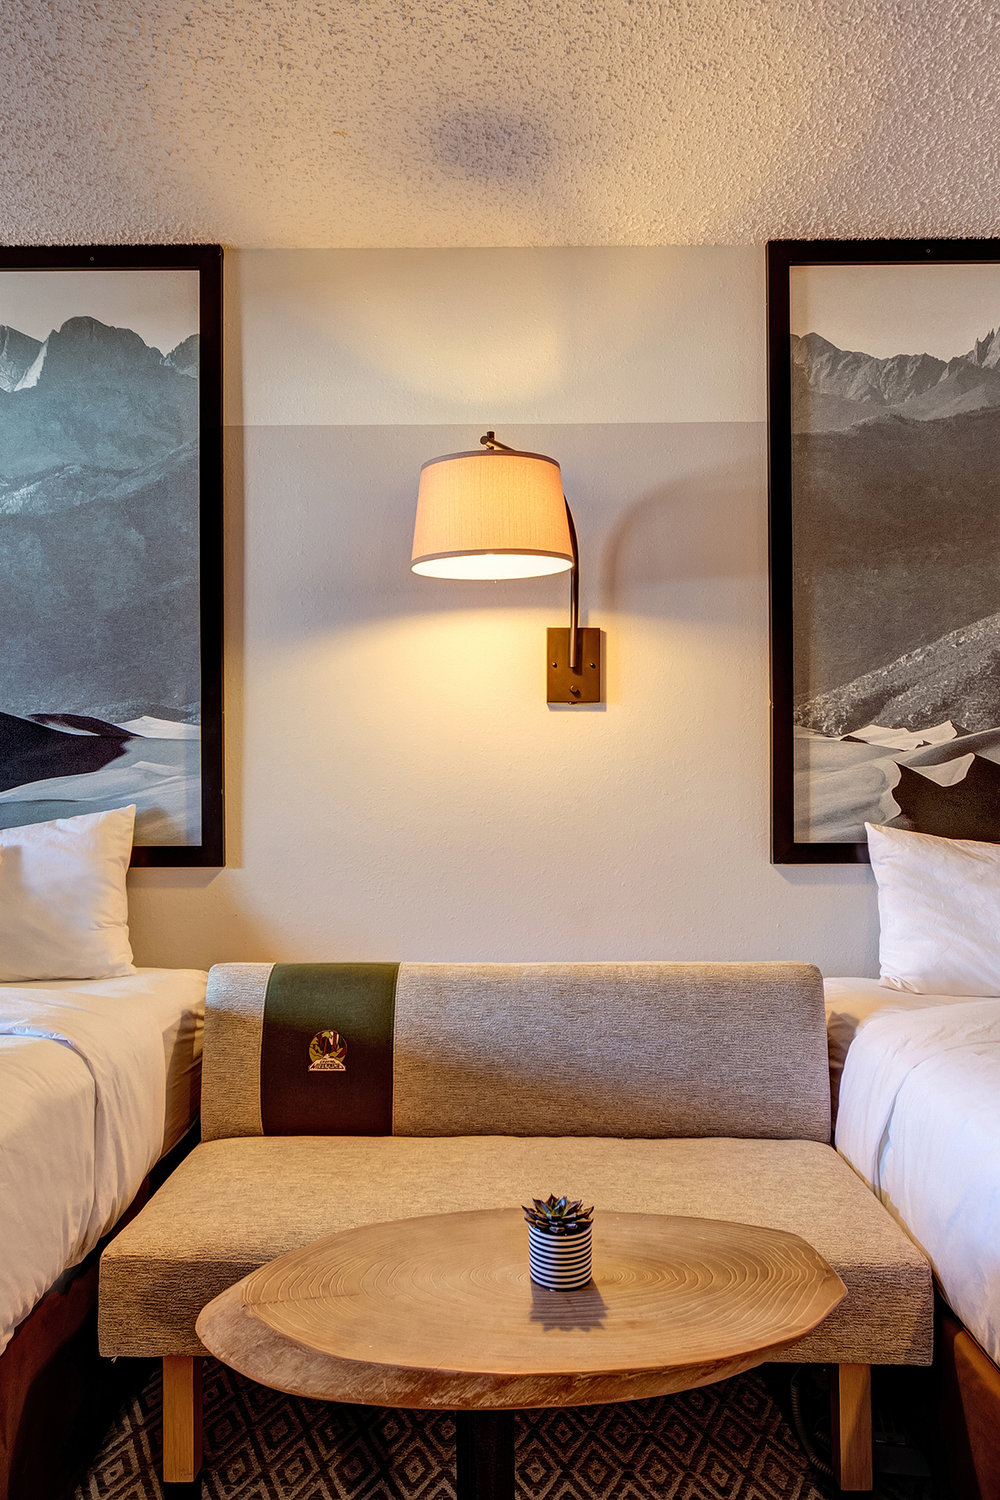 Loyal Duke Double Queen - Ground floor non-smoking room offering a panoramic view of the beautiful Sawatch Range with two queen-sized Simmons Mattress beds. Perfect for that extended stay or a family traveling with children.